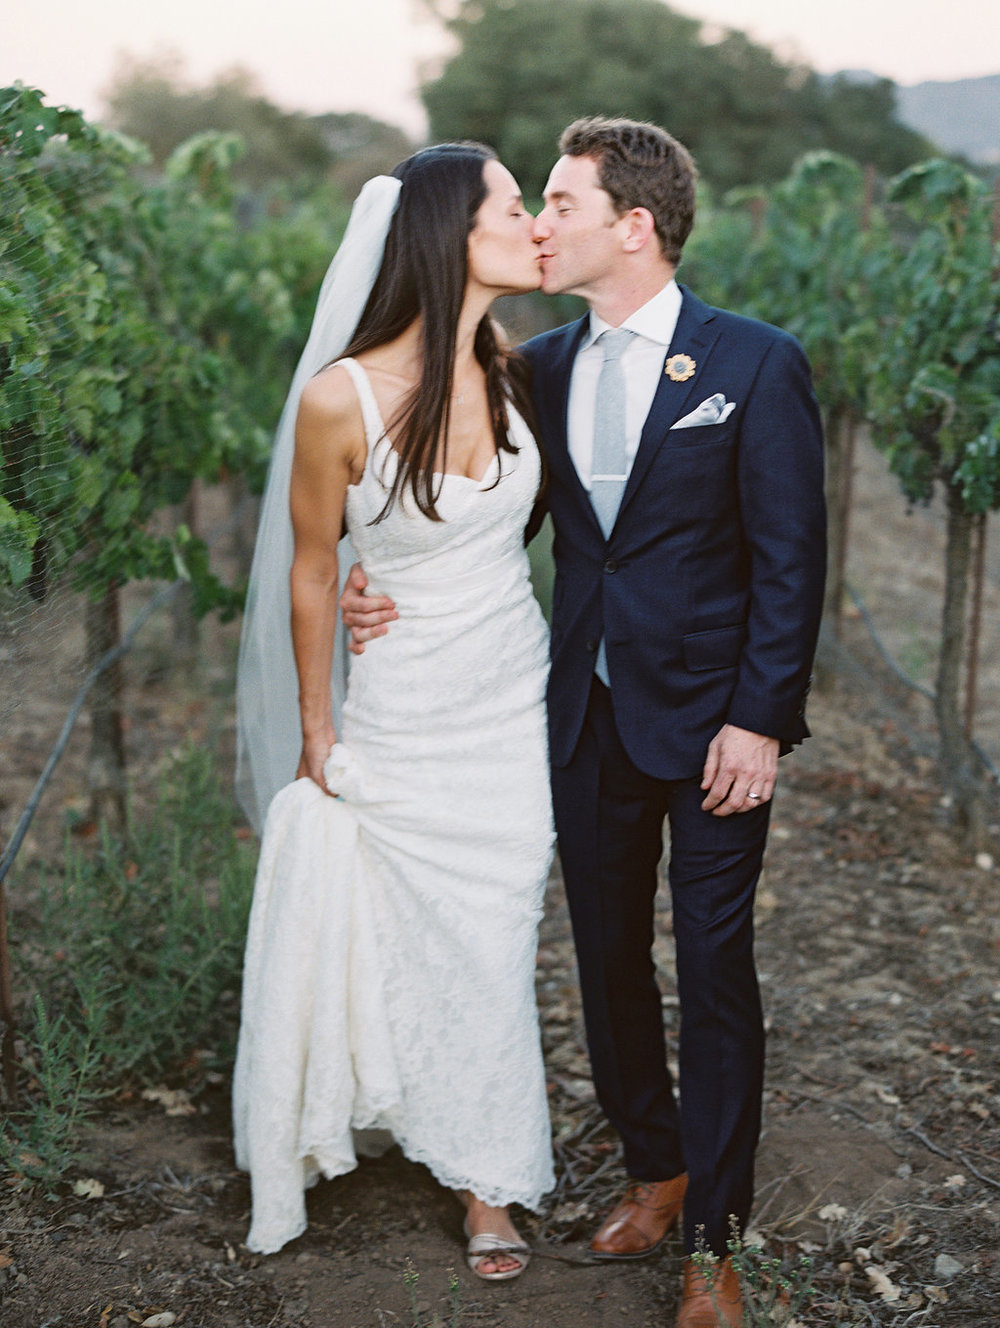 www.santabarbarawedding.com | Lavender and Twine | Sunstone Winery | Bride and Groom